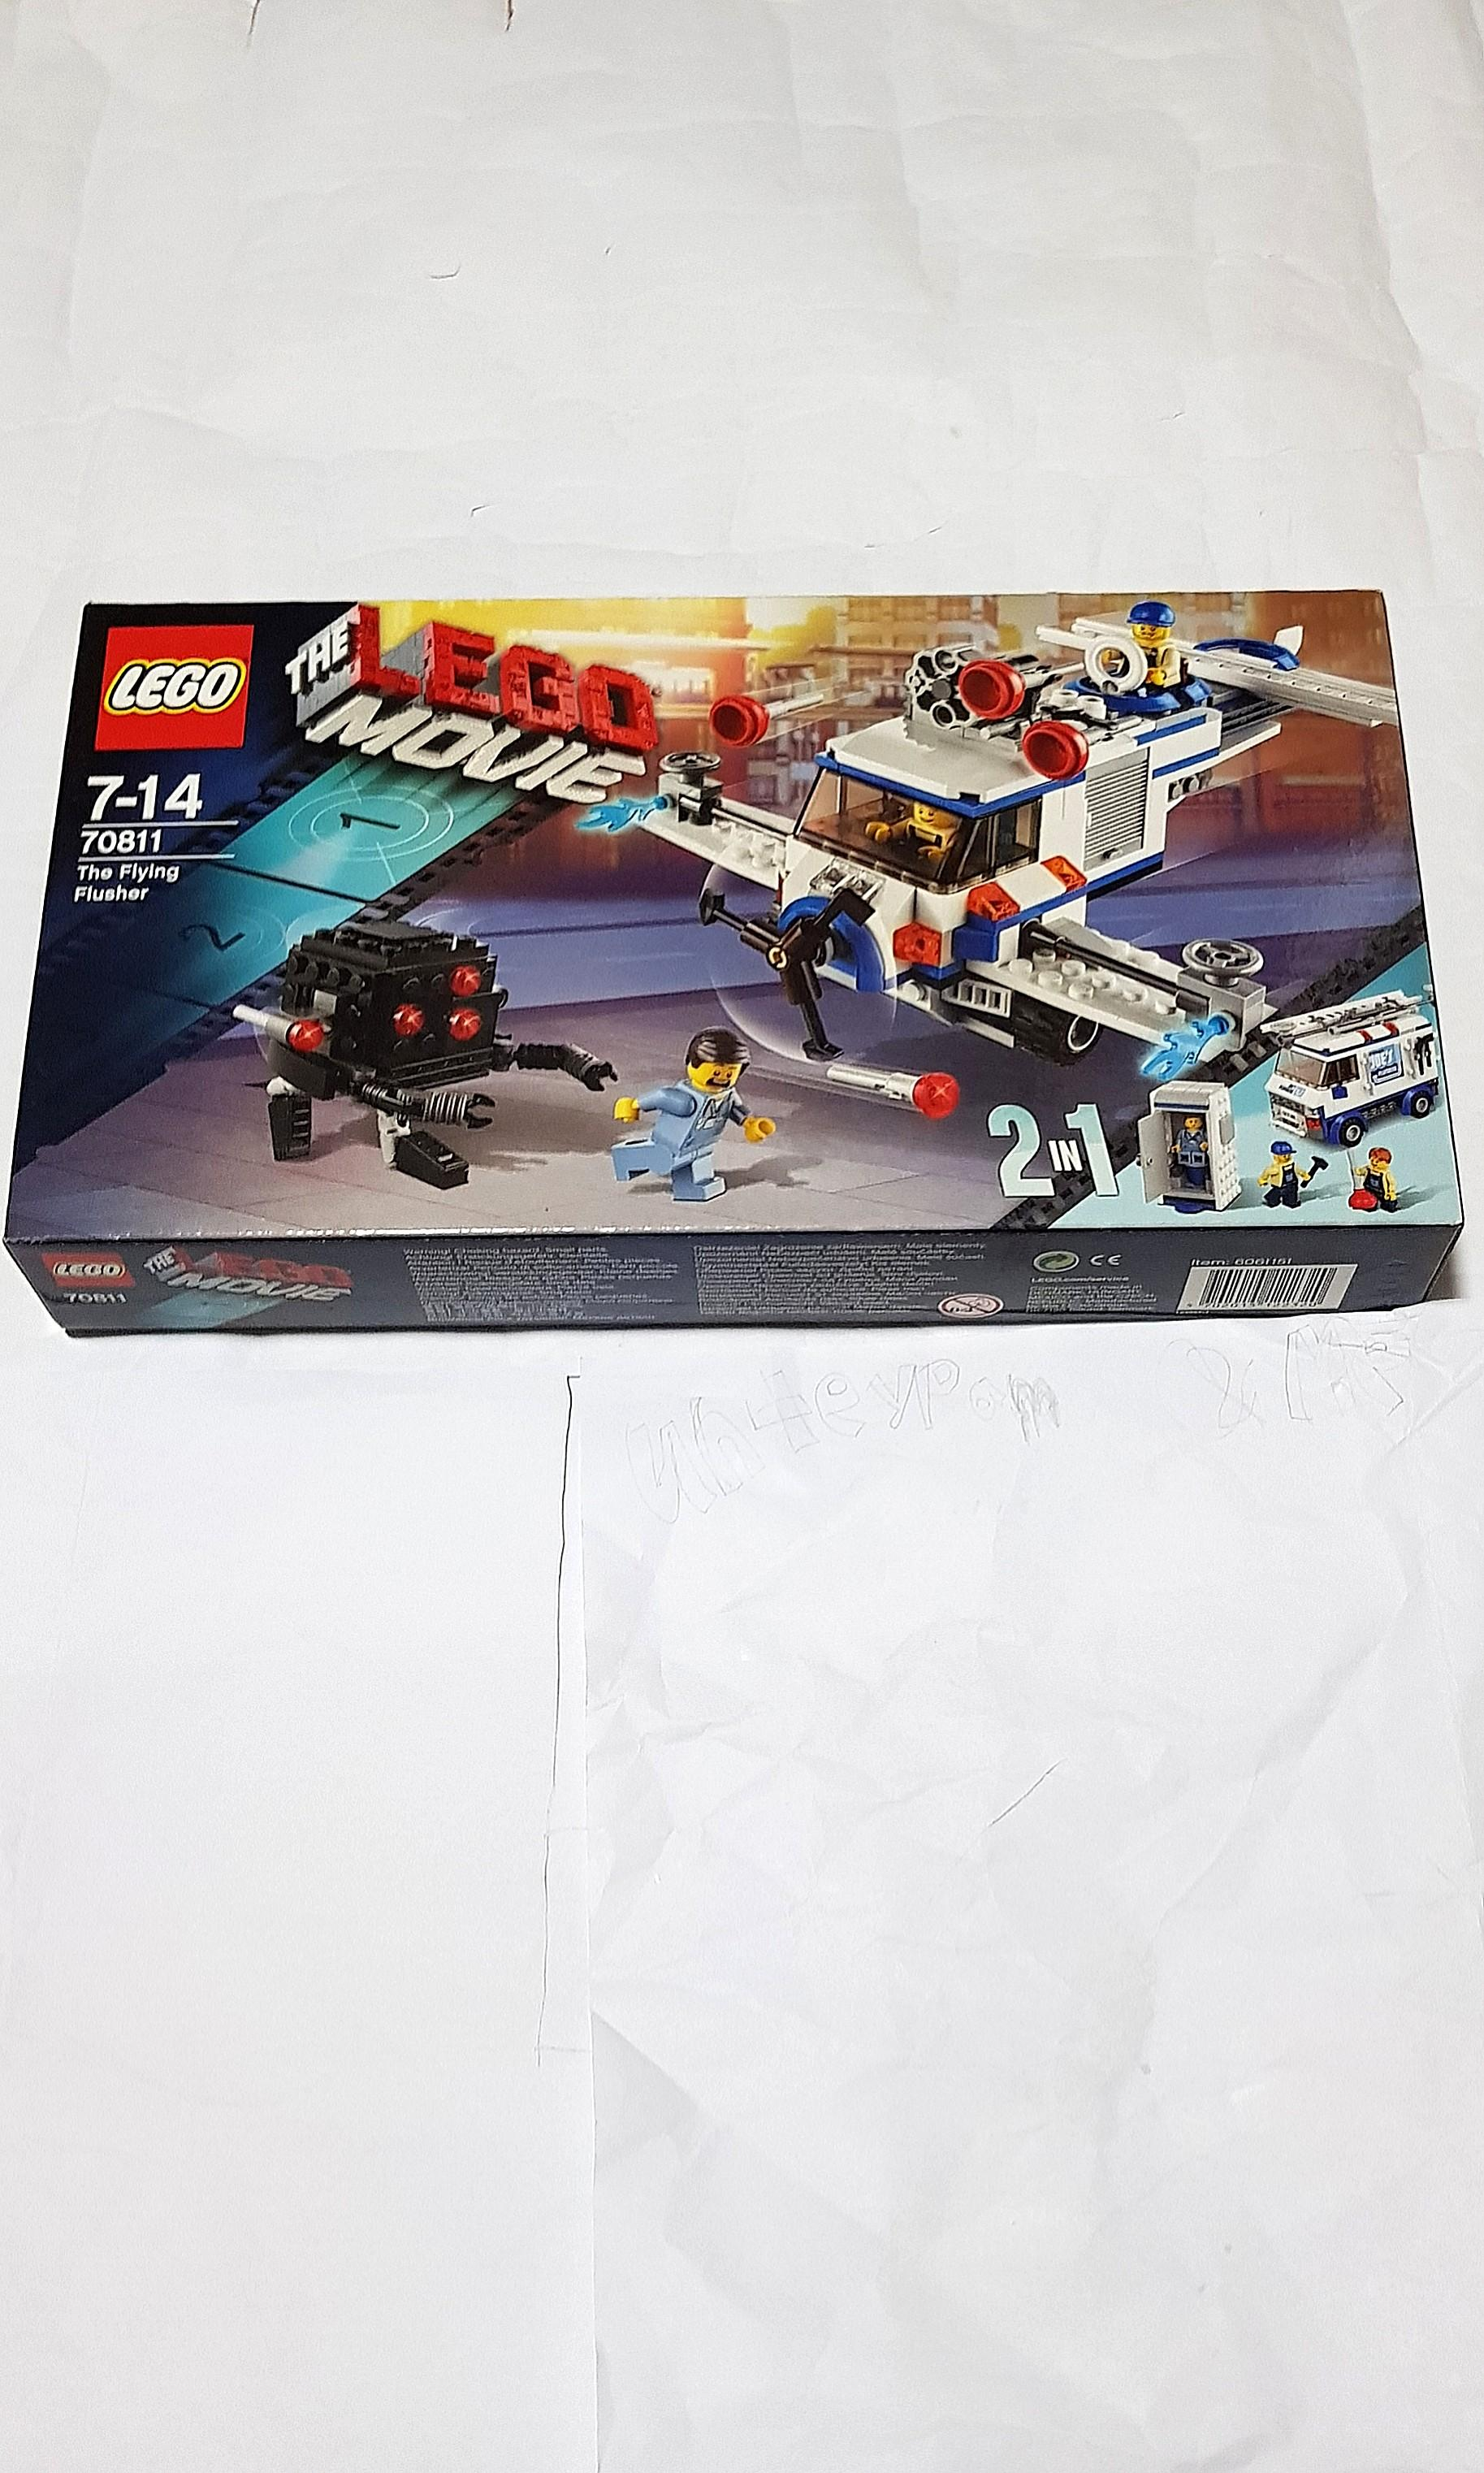 Lego The Lego Movie 70811 The Flying Flusher NEW and SEALED